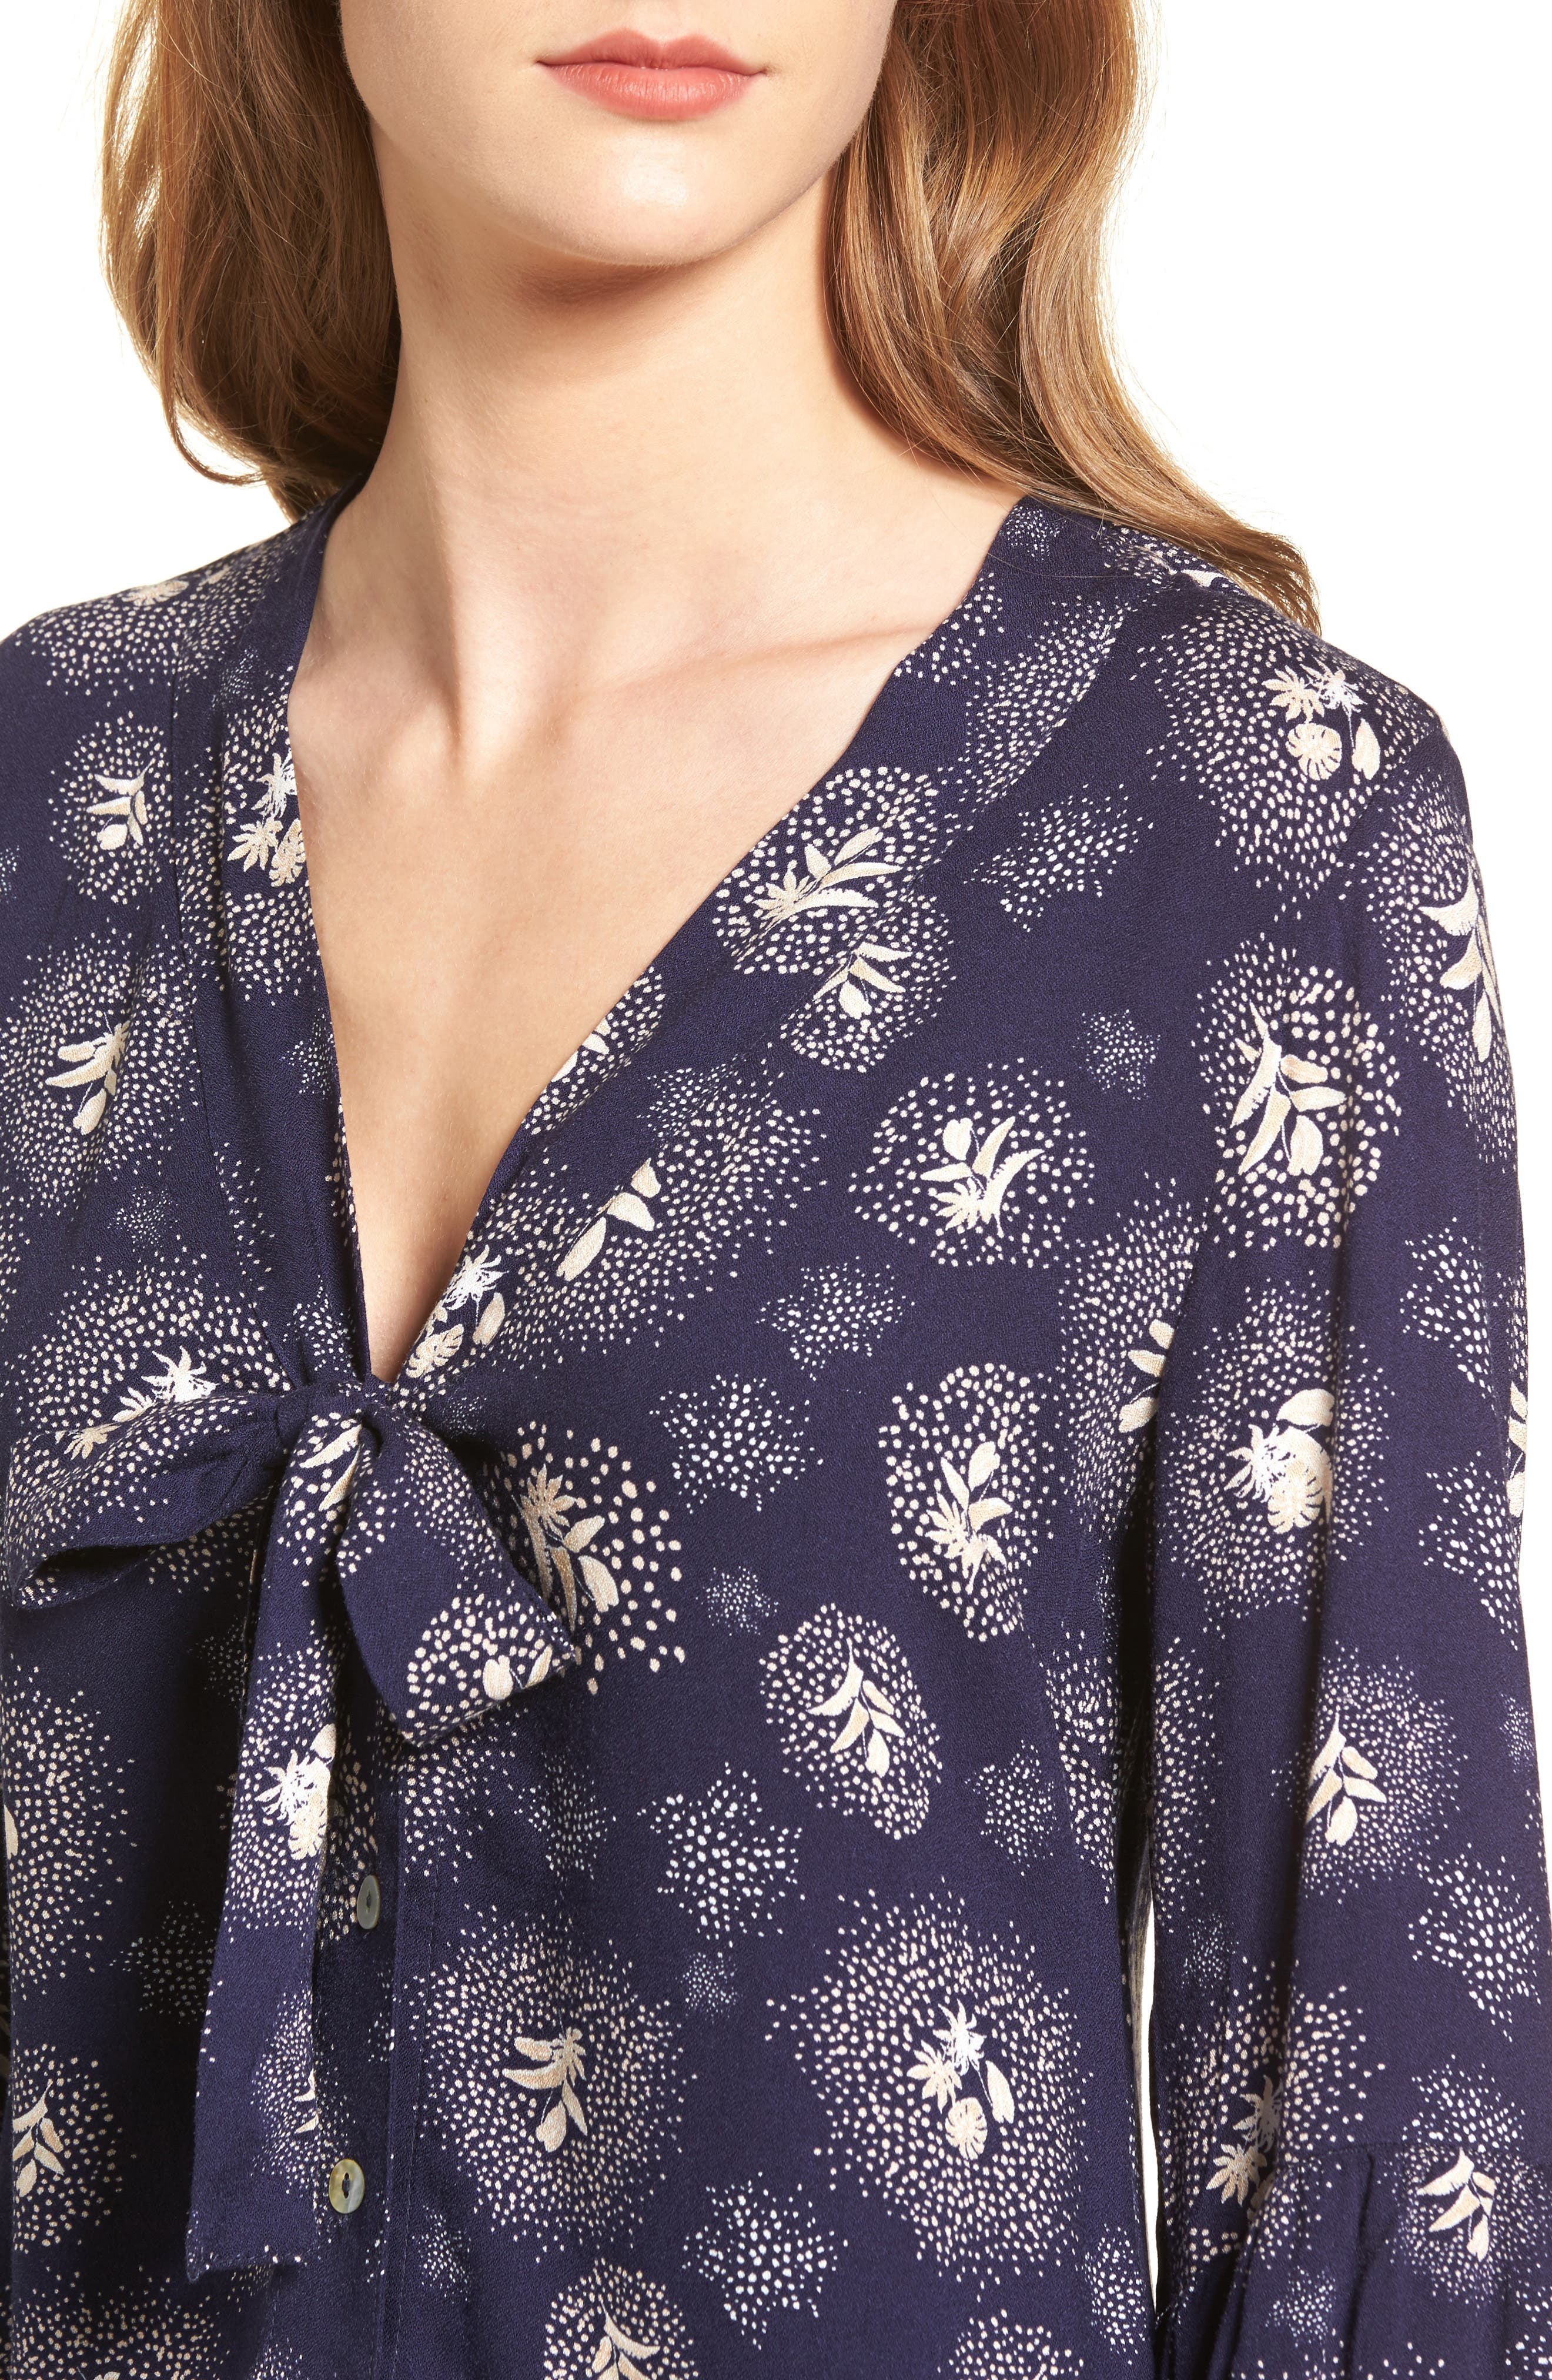 Glimmering Nights Blouse,                             Alternate thumbnail 4, color,                             400